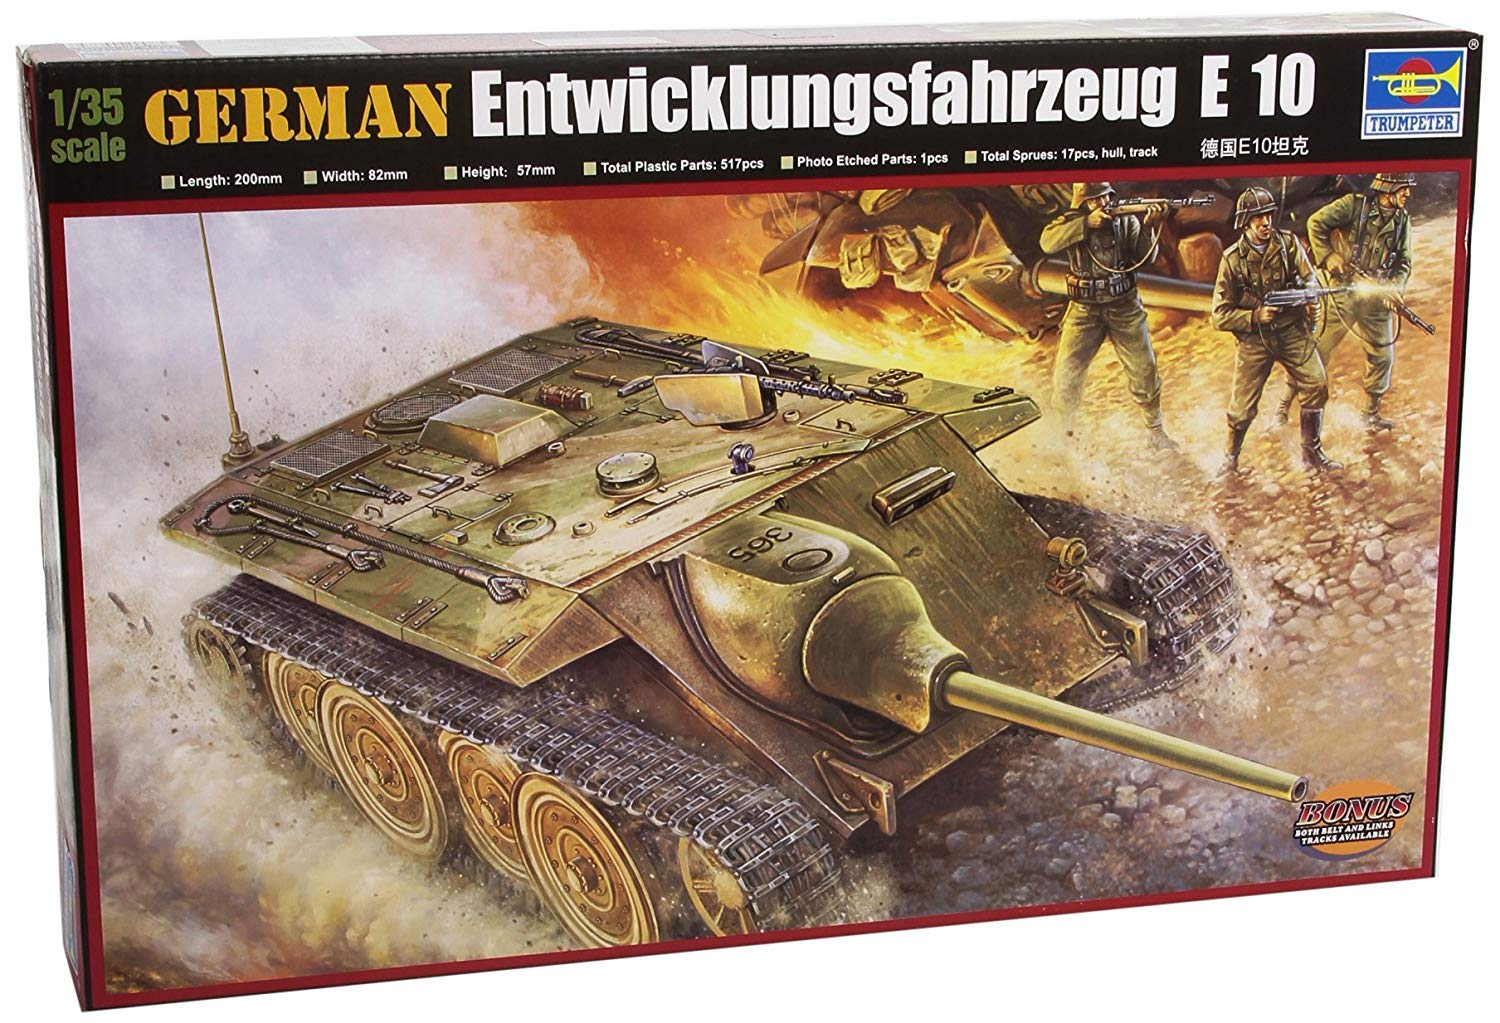 Trumpeter 00385 model construction kit, German E-10 tank